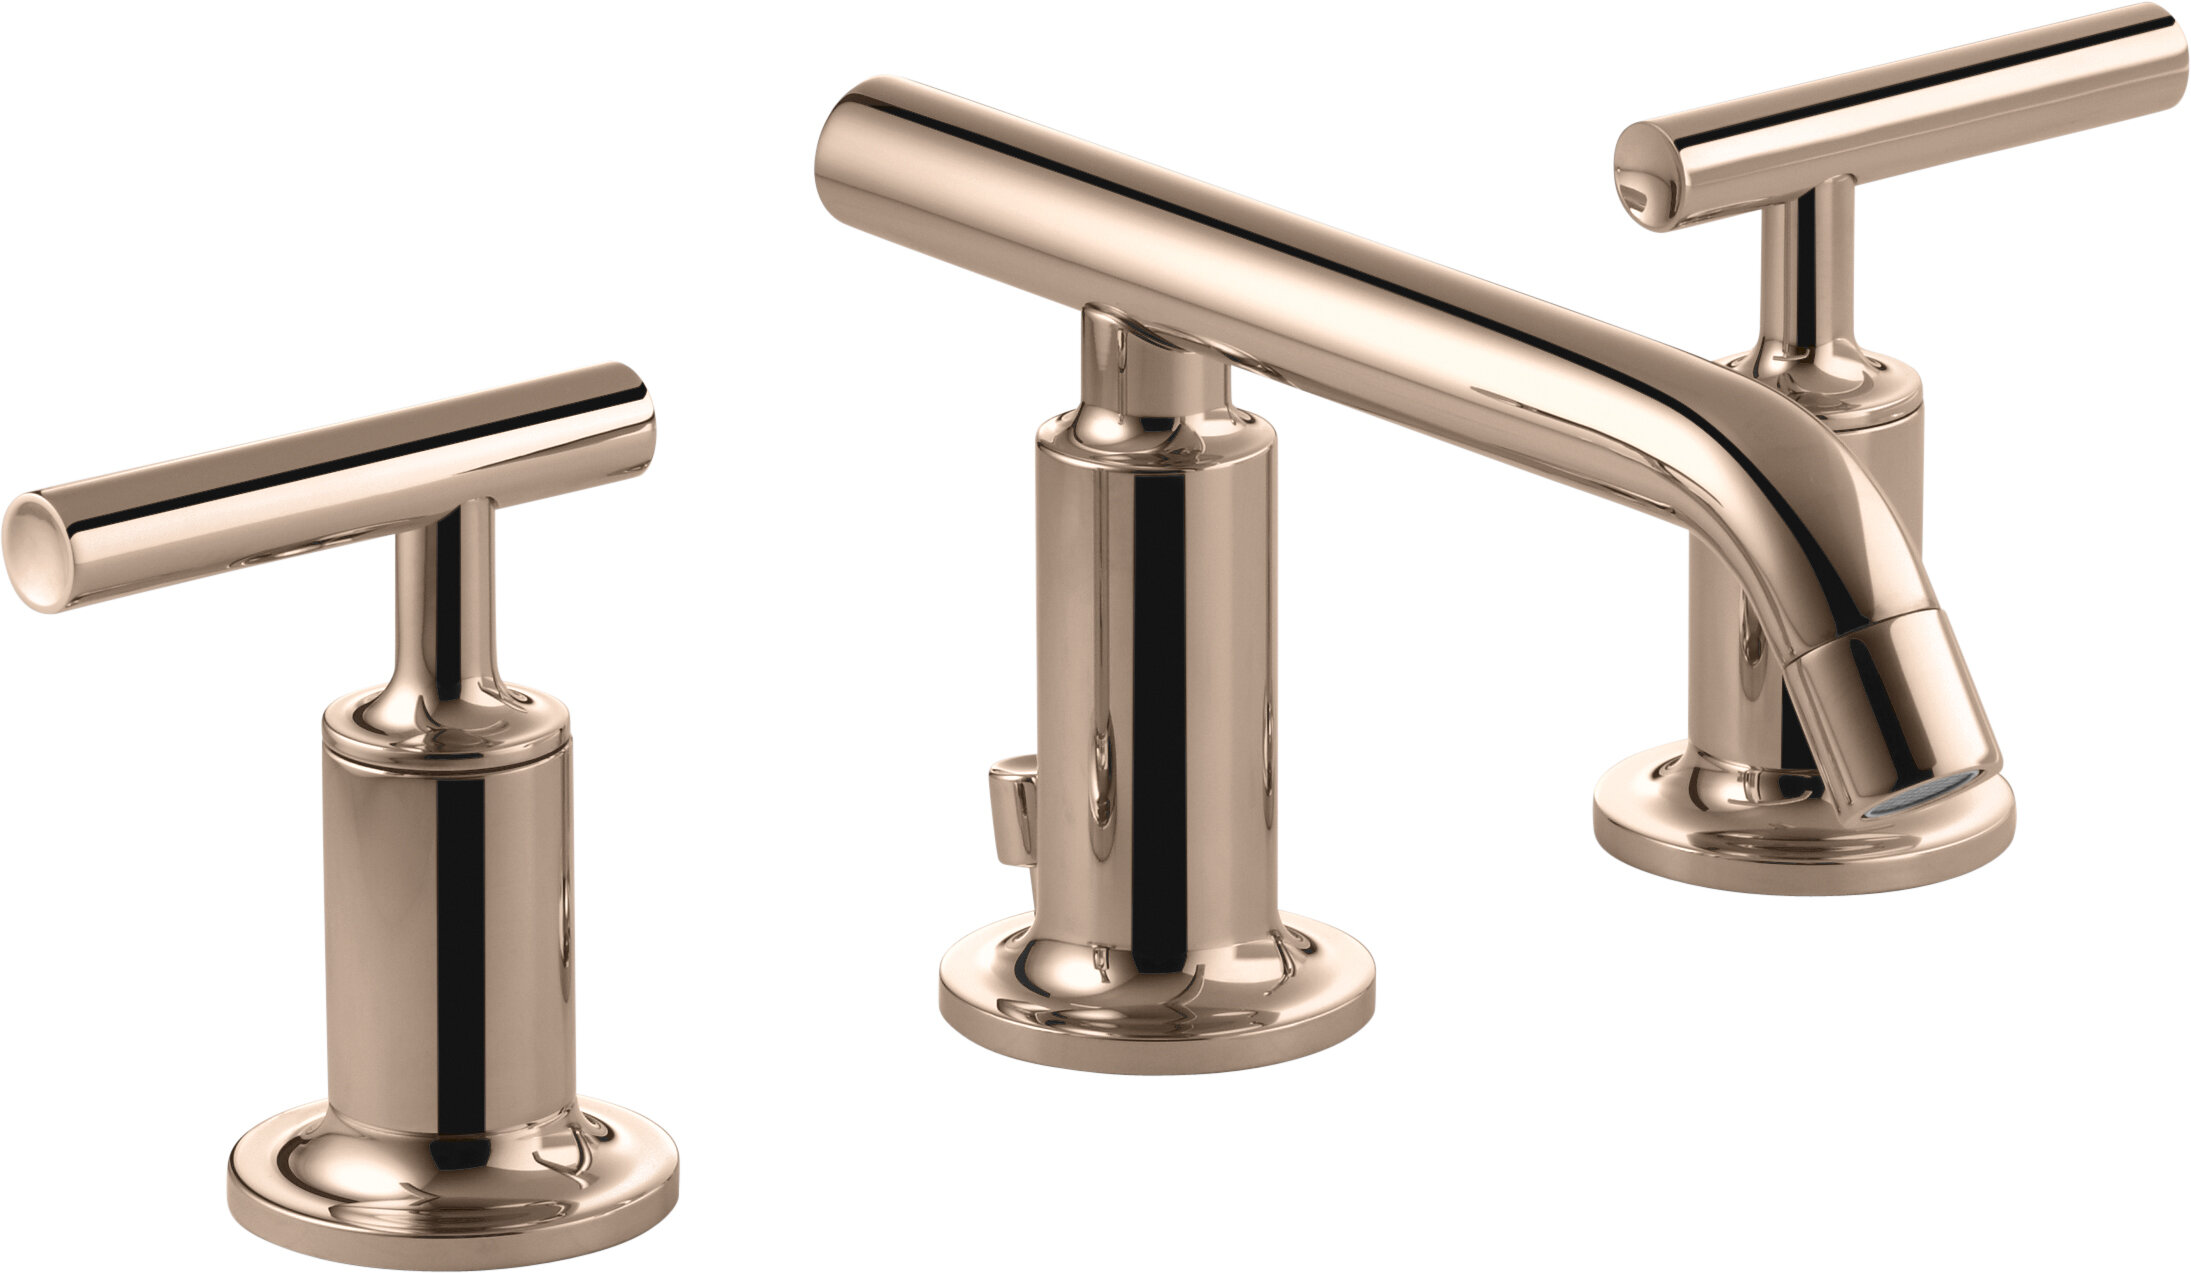 Kohler Purist Widespread Bathroom Sink Faucet With Low Lever Handles And Low Spout Wayfair